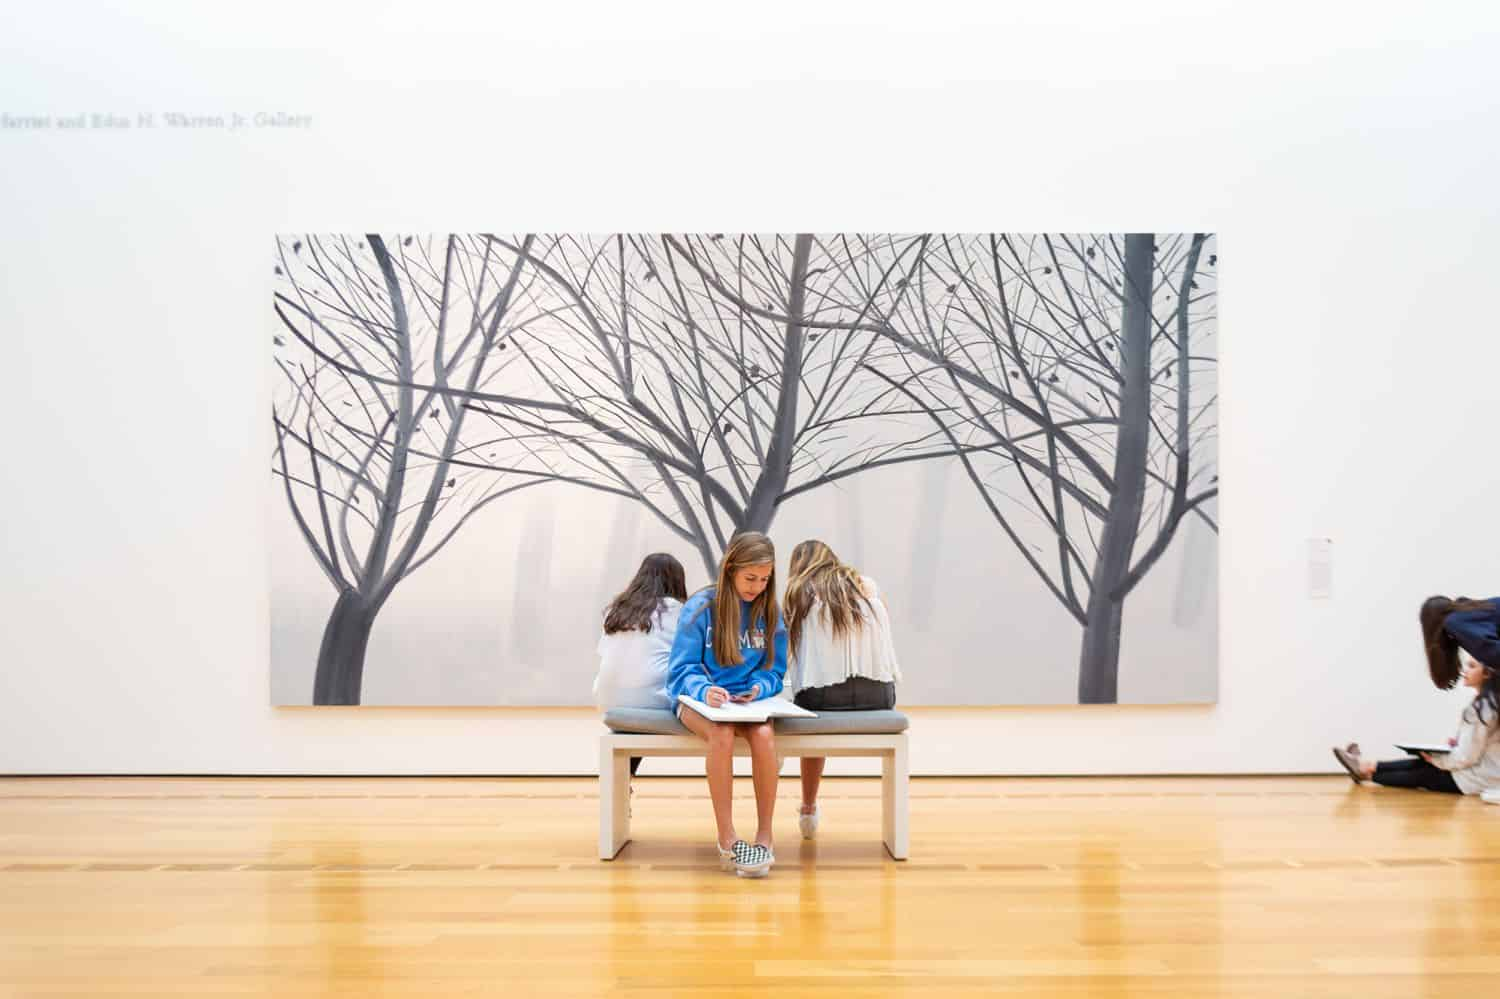 Build Your Dream Photography Business on a Budget: Three schoolgirls sit on a bench in front of a massive gallery painting